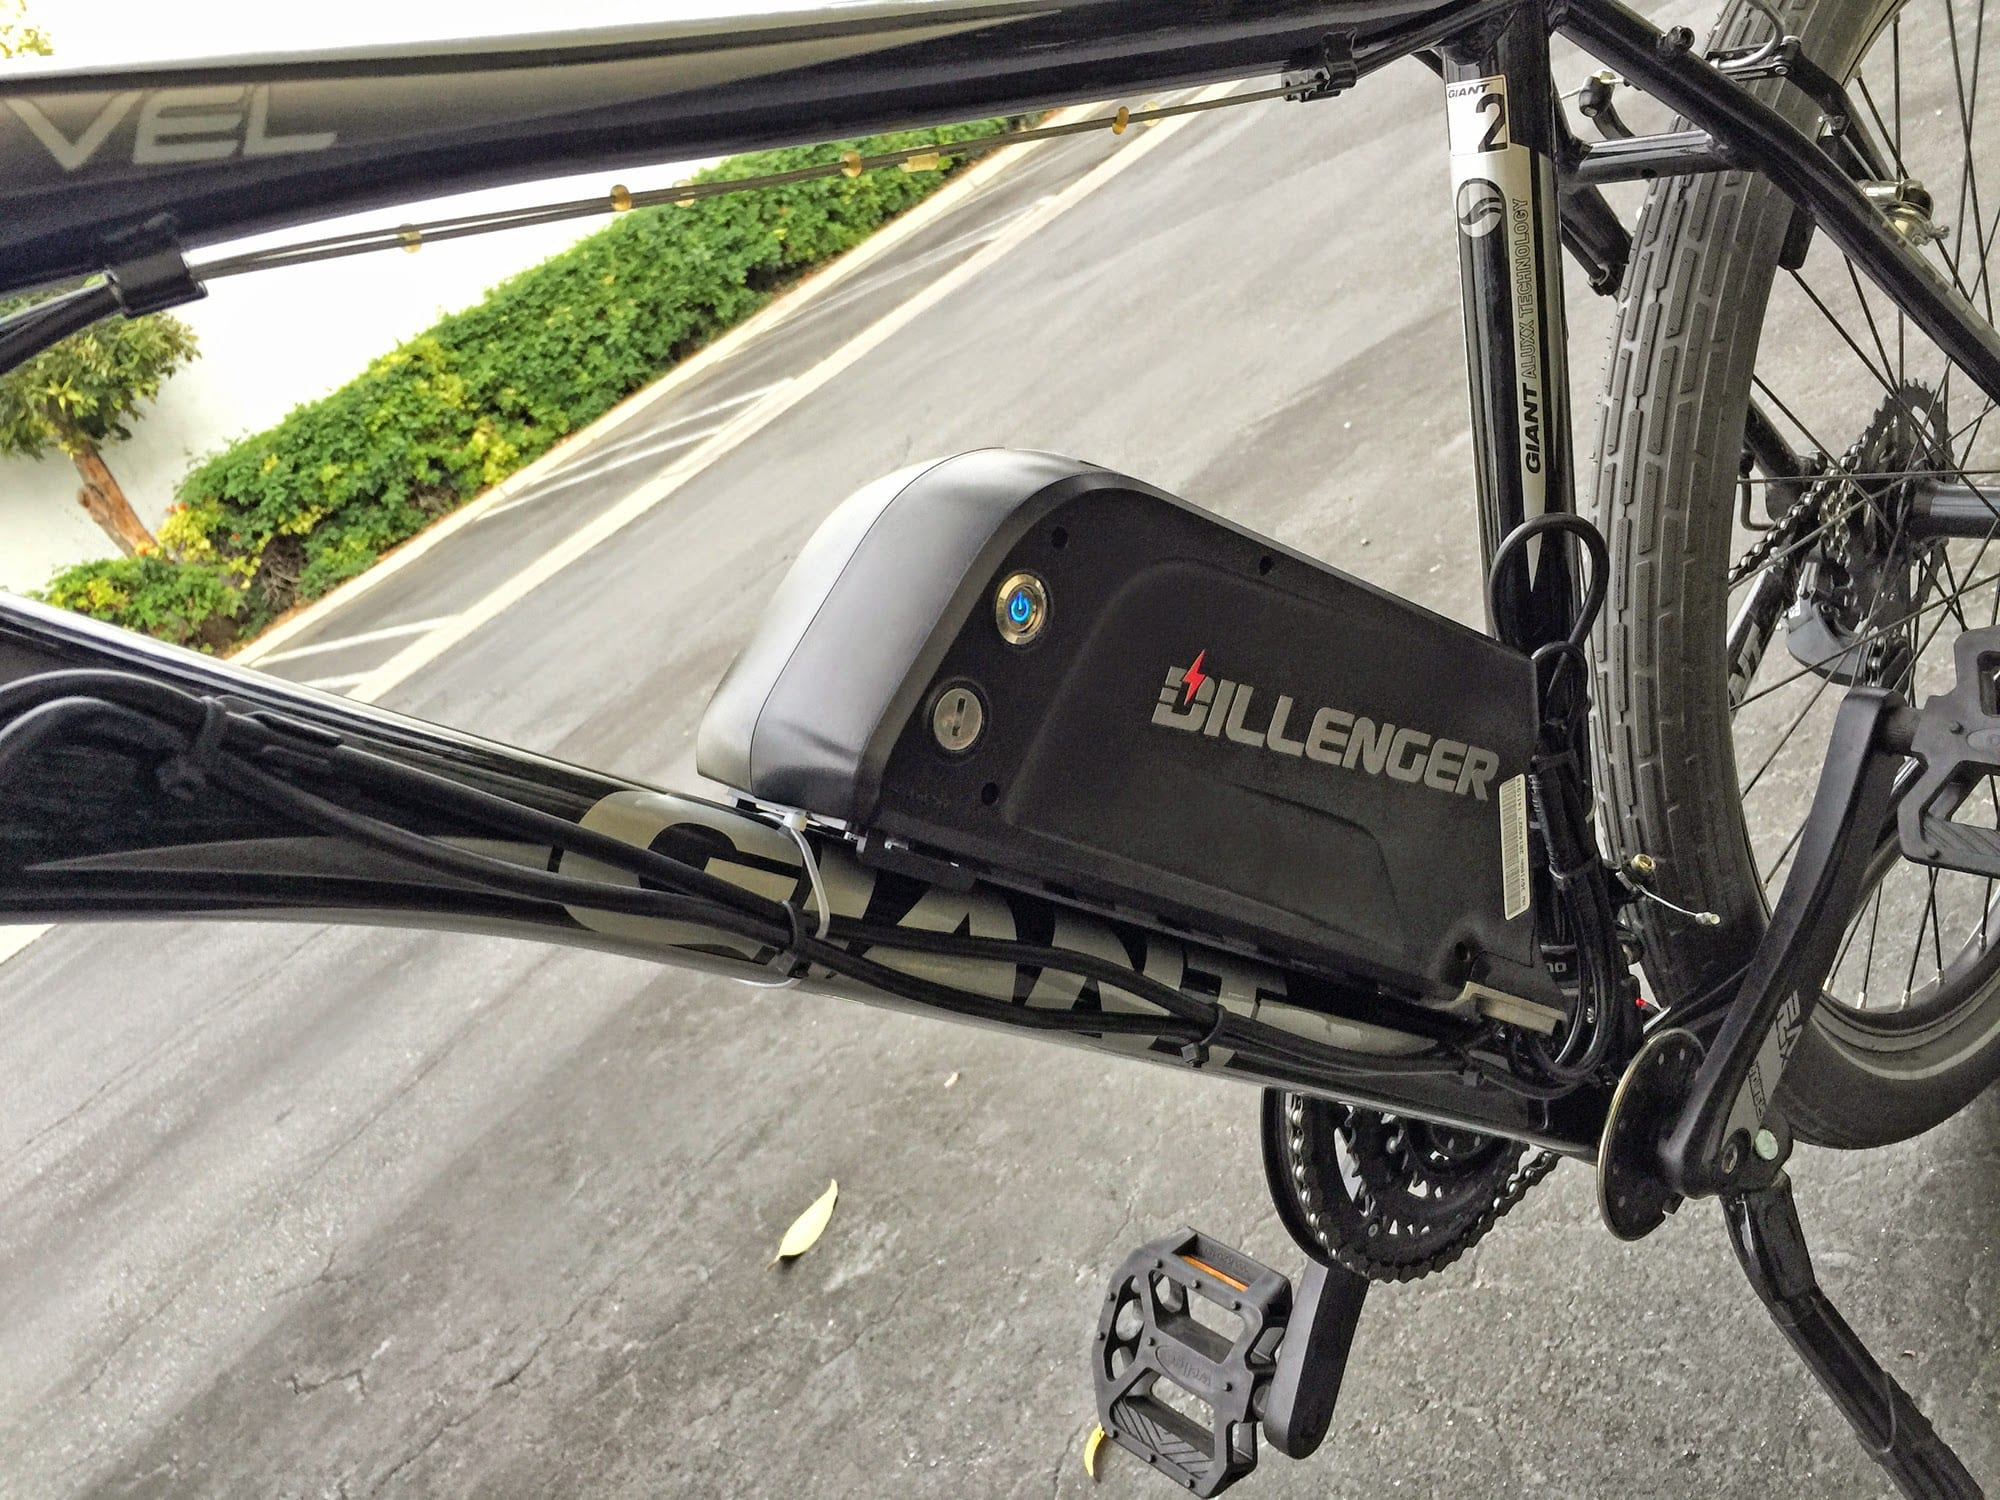 Dillenger 350w Geared Electric Bike Kit Review Prices